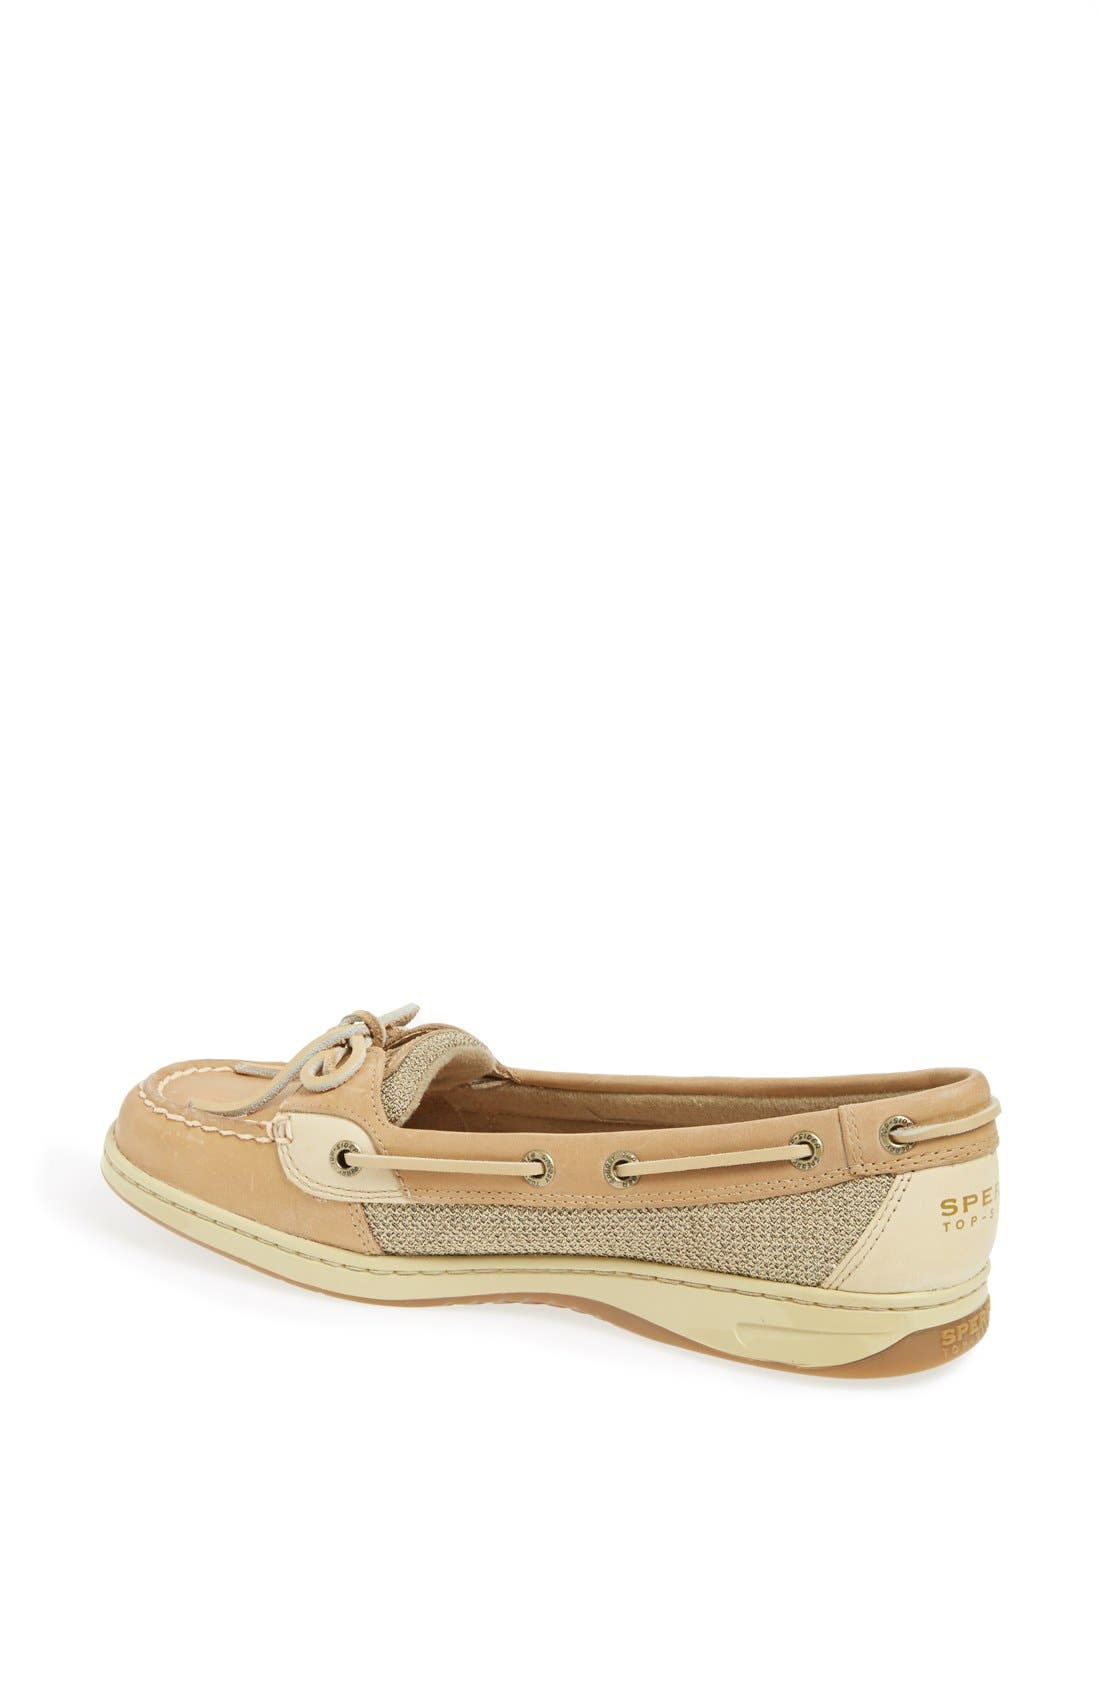 Alternate Image 2  - Sperry 'Angelfish' Boat Shoe (Women)